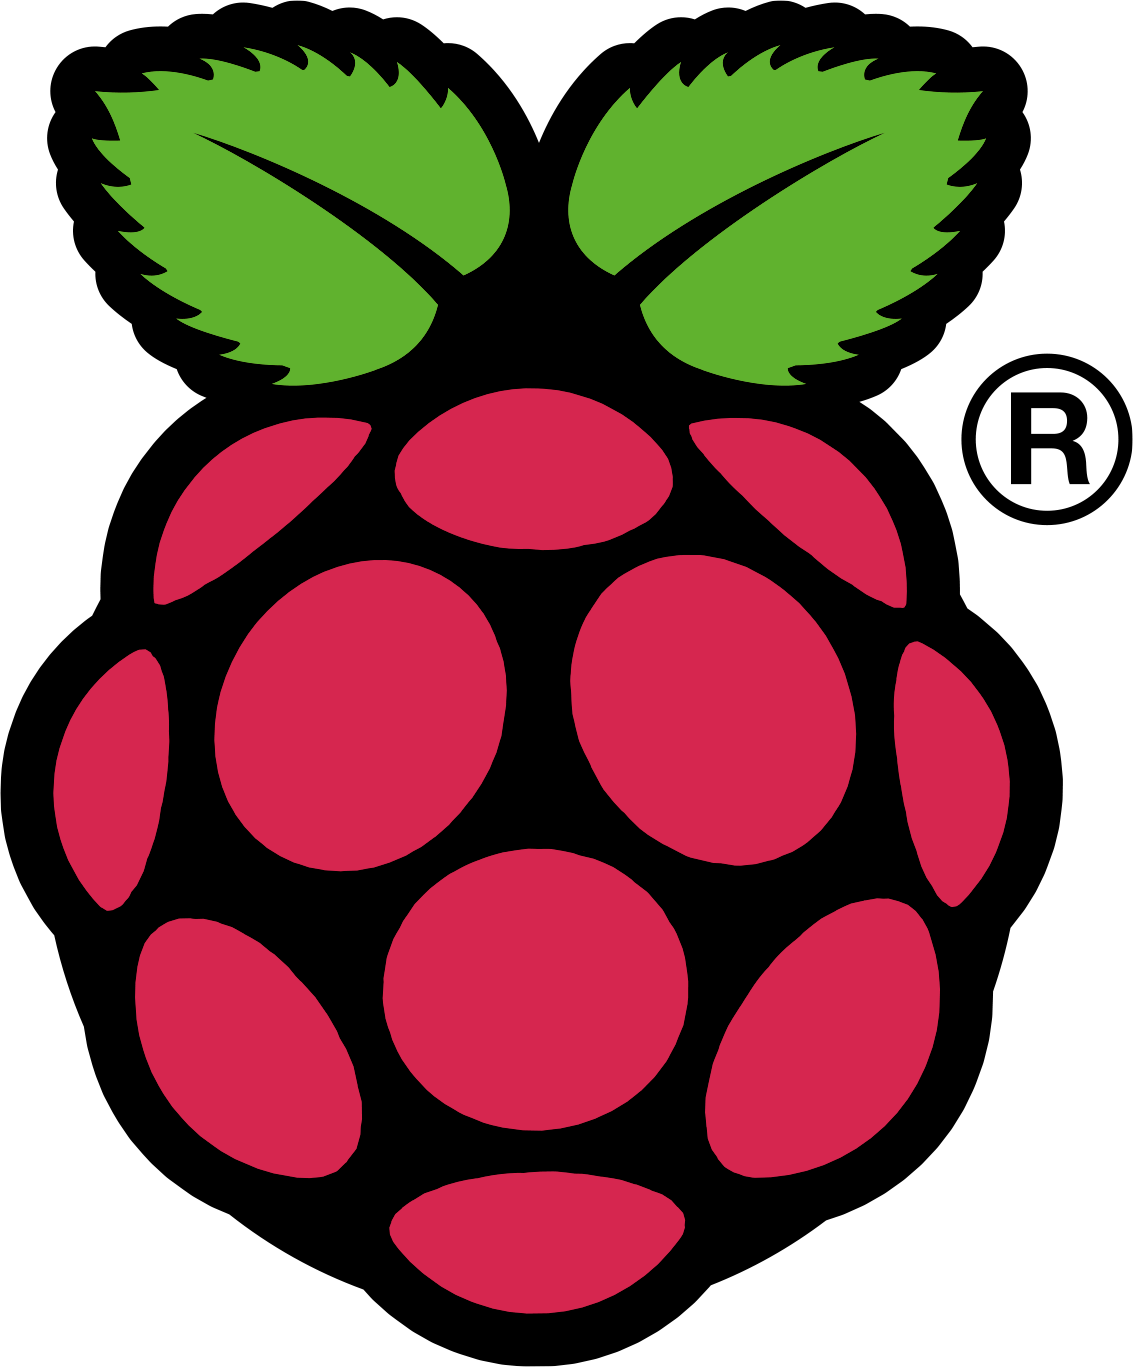 Raspberry Pi Zero il PC low cost da 5$